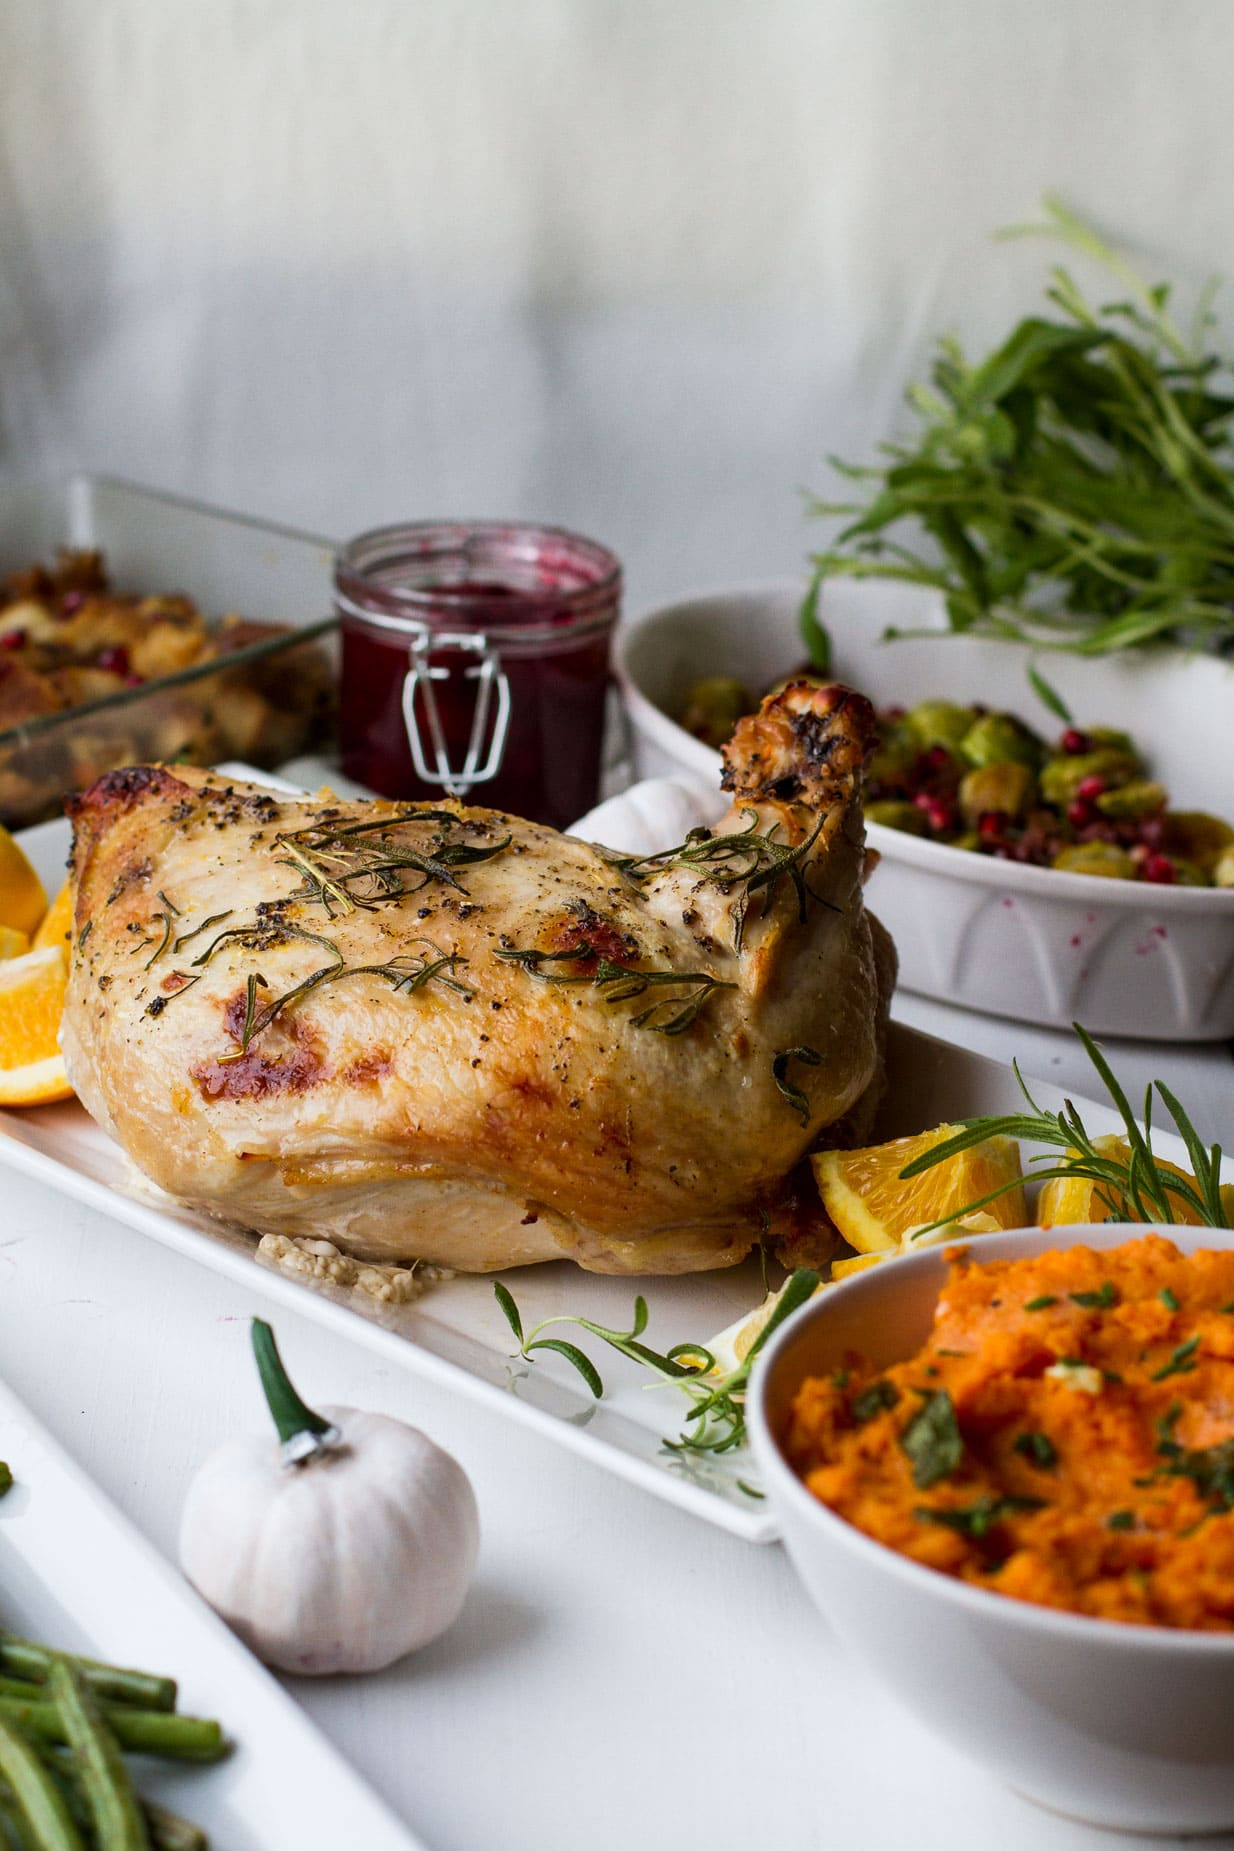 Turkey breast on a white plate, Thanksgiving side dishes around.